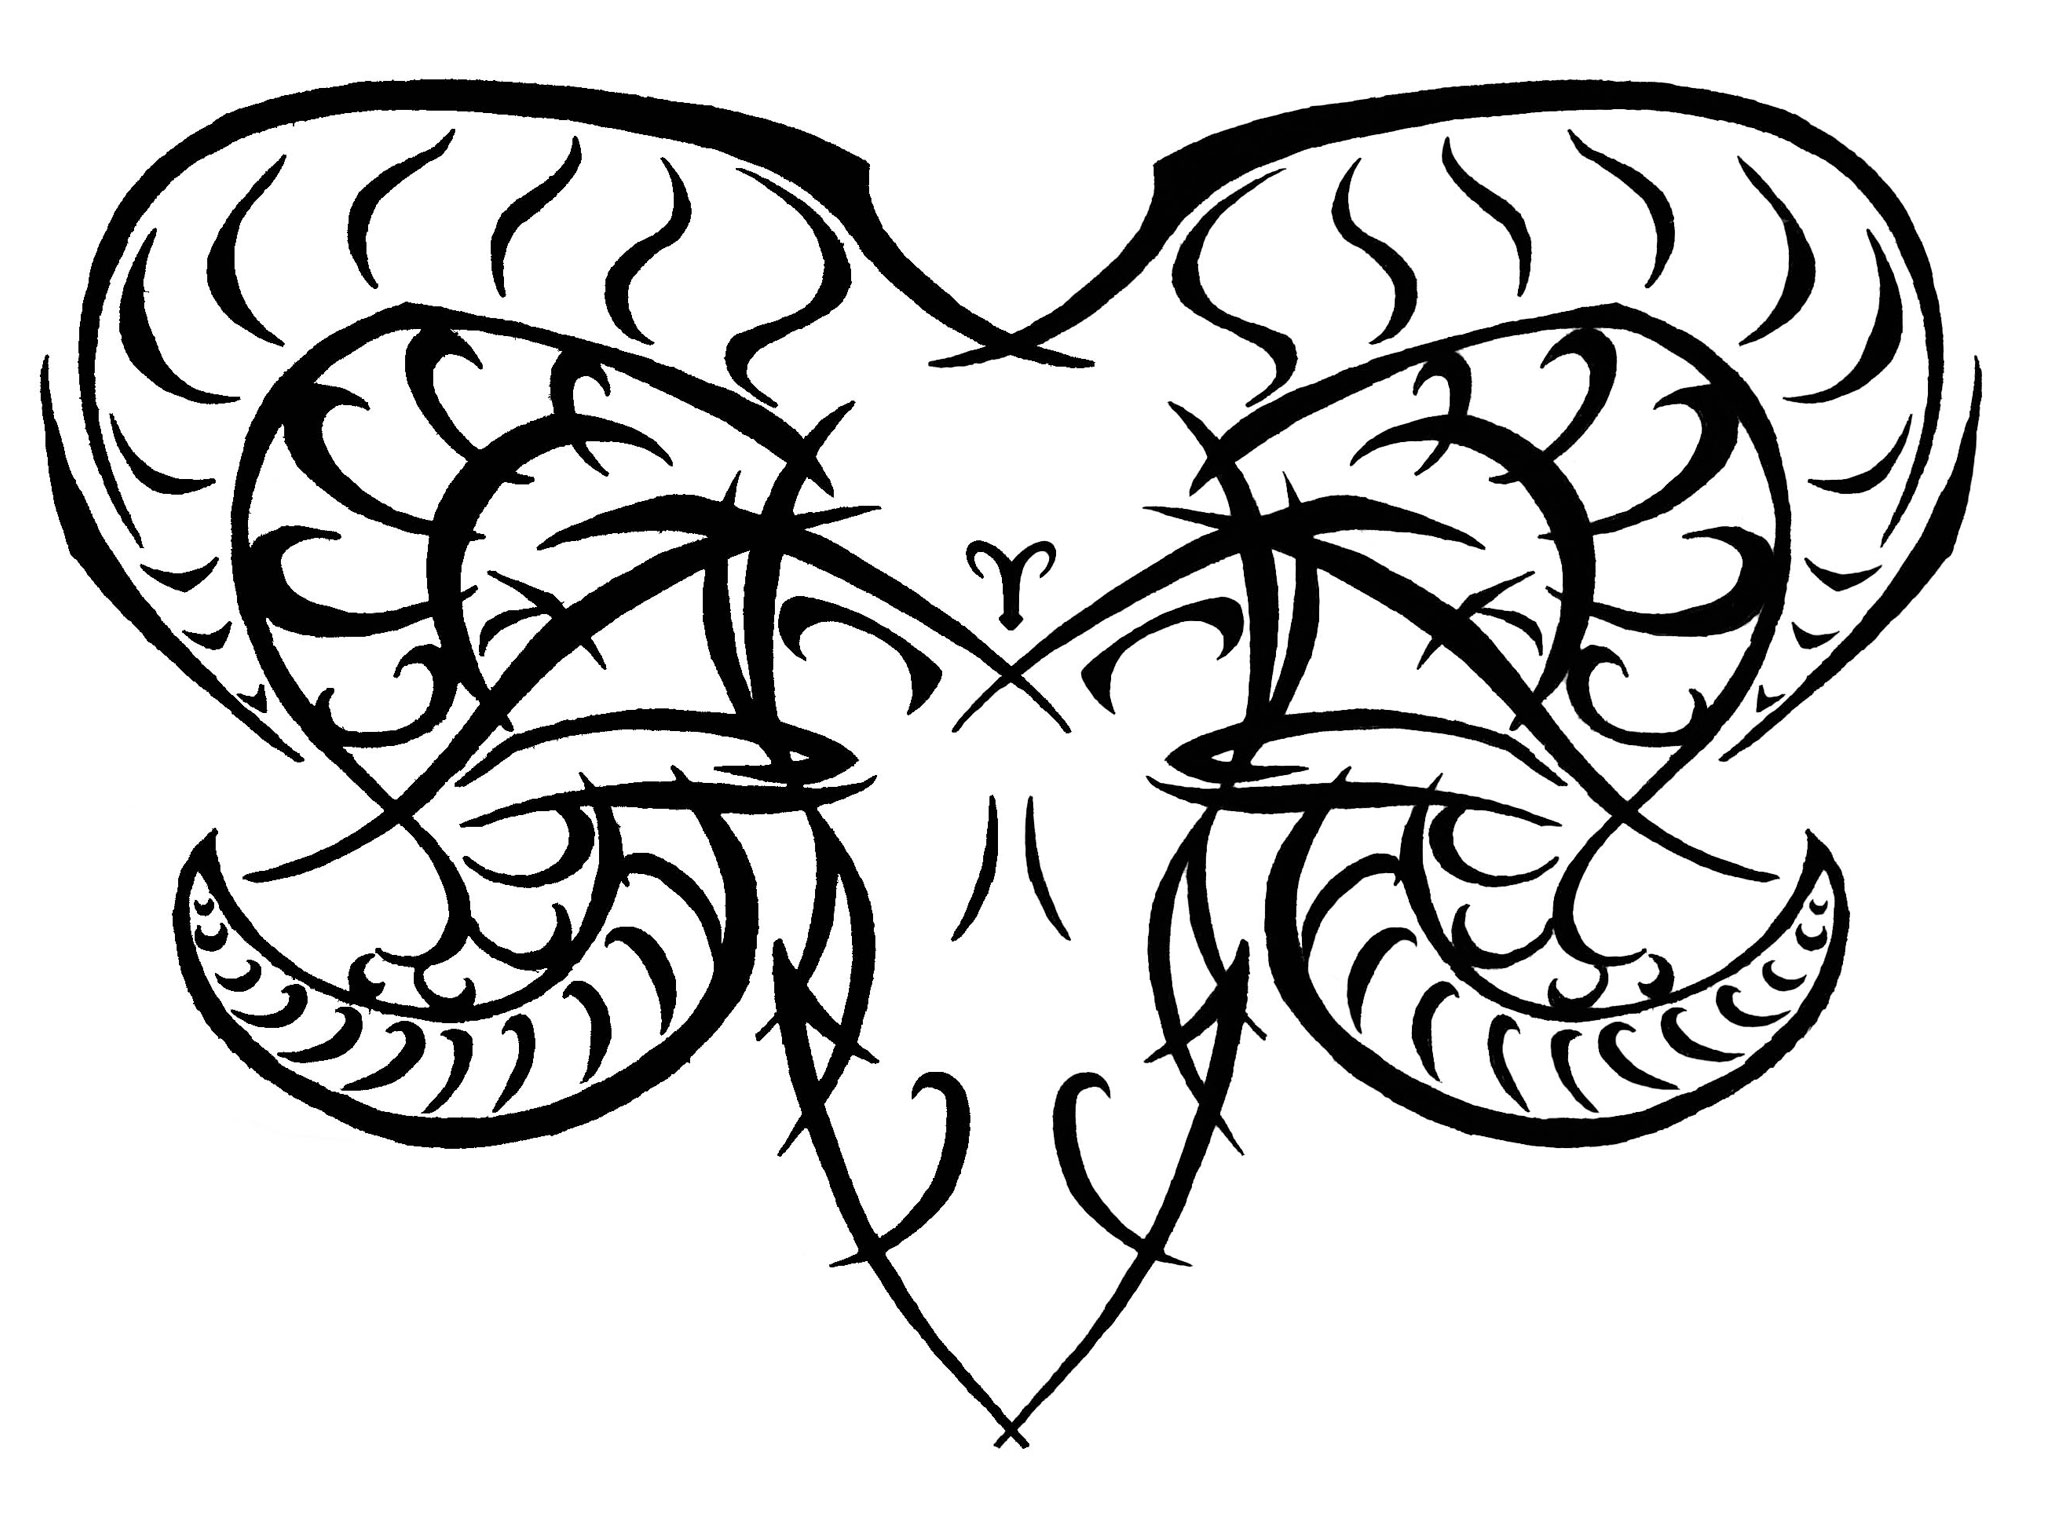 Aries Tattoos Designs Ideas And Meaning